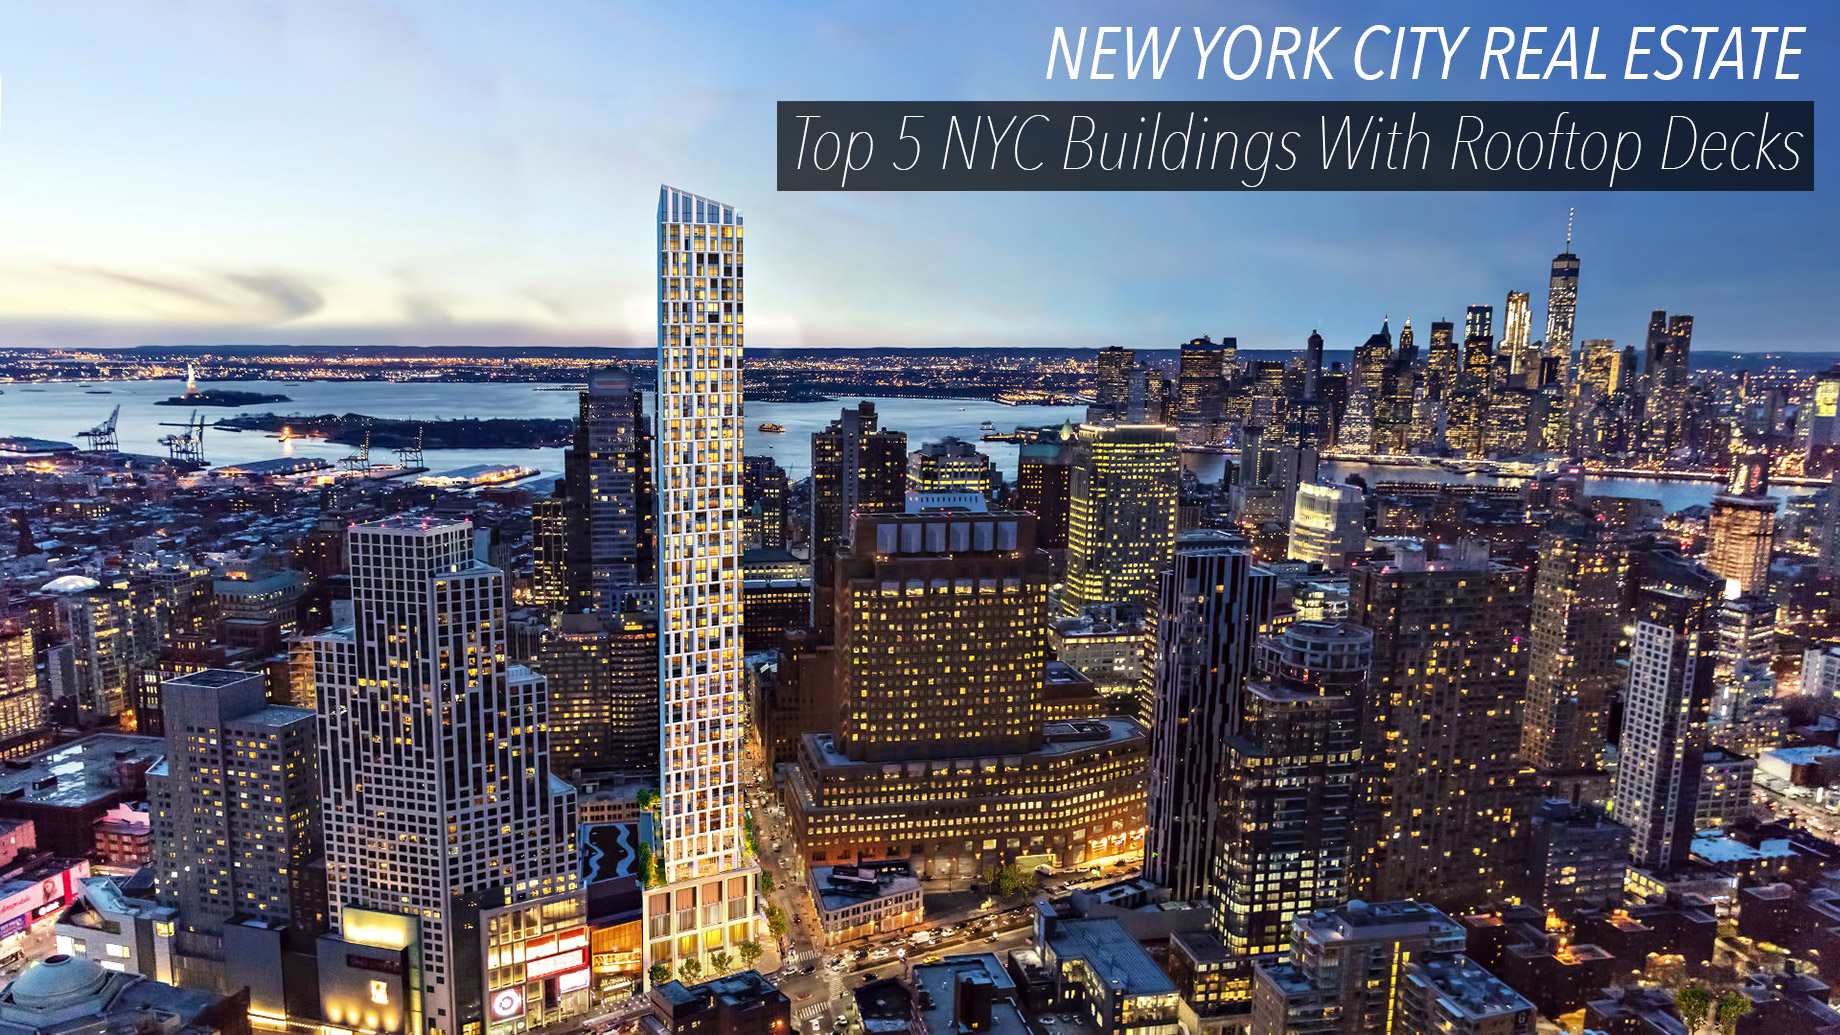 New York City Real Estate - Top 5 NYC Buildings With Rooftop Decks